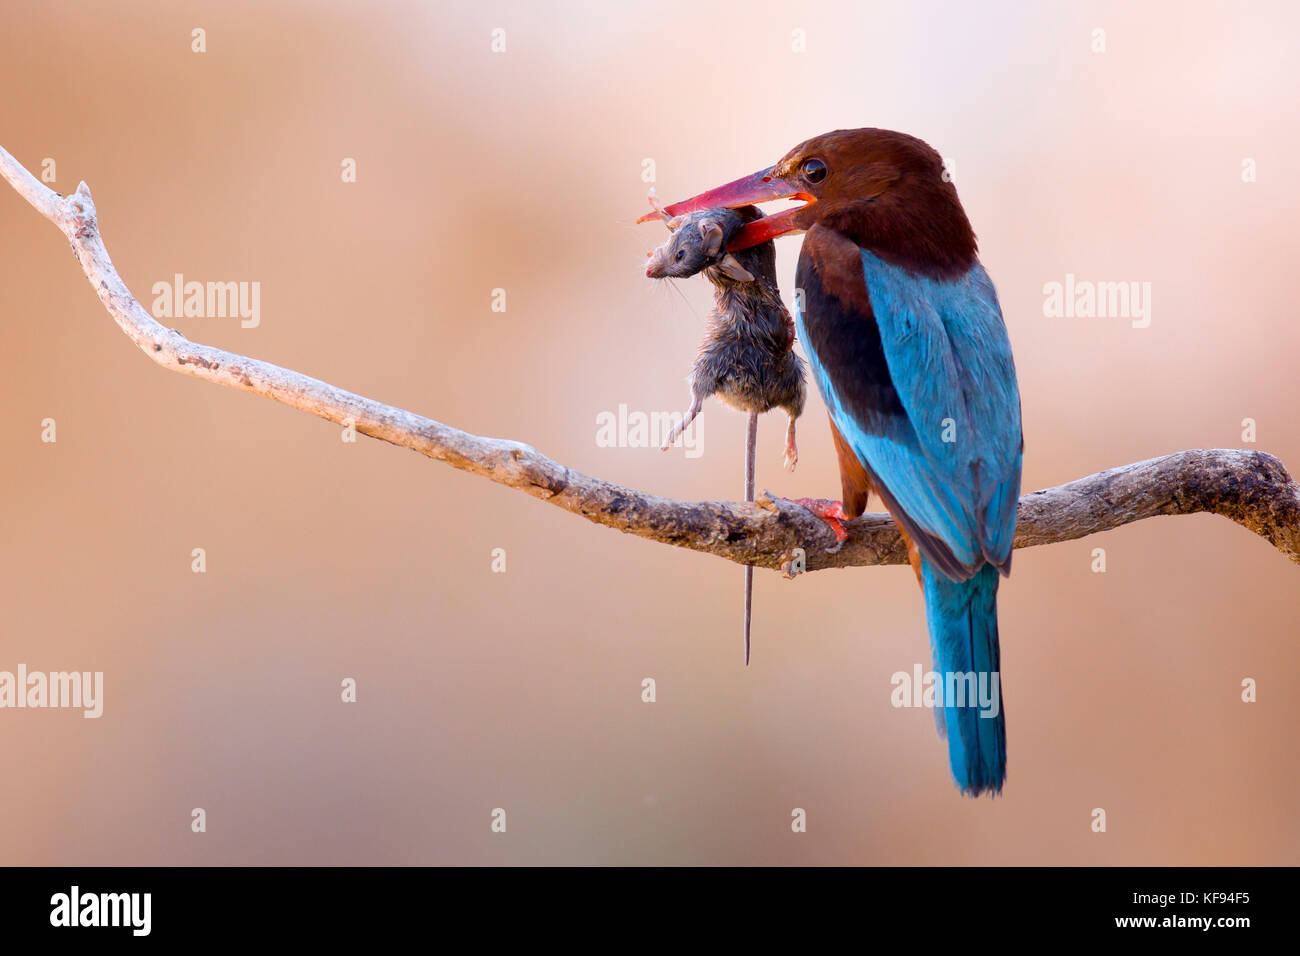 White-throated Kingfisher (Halcyon smyrnensis) with a rodent in its beak, Negev, Israel - Stock Image